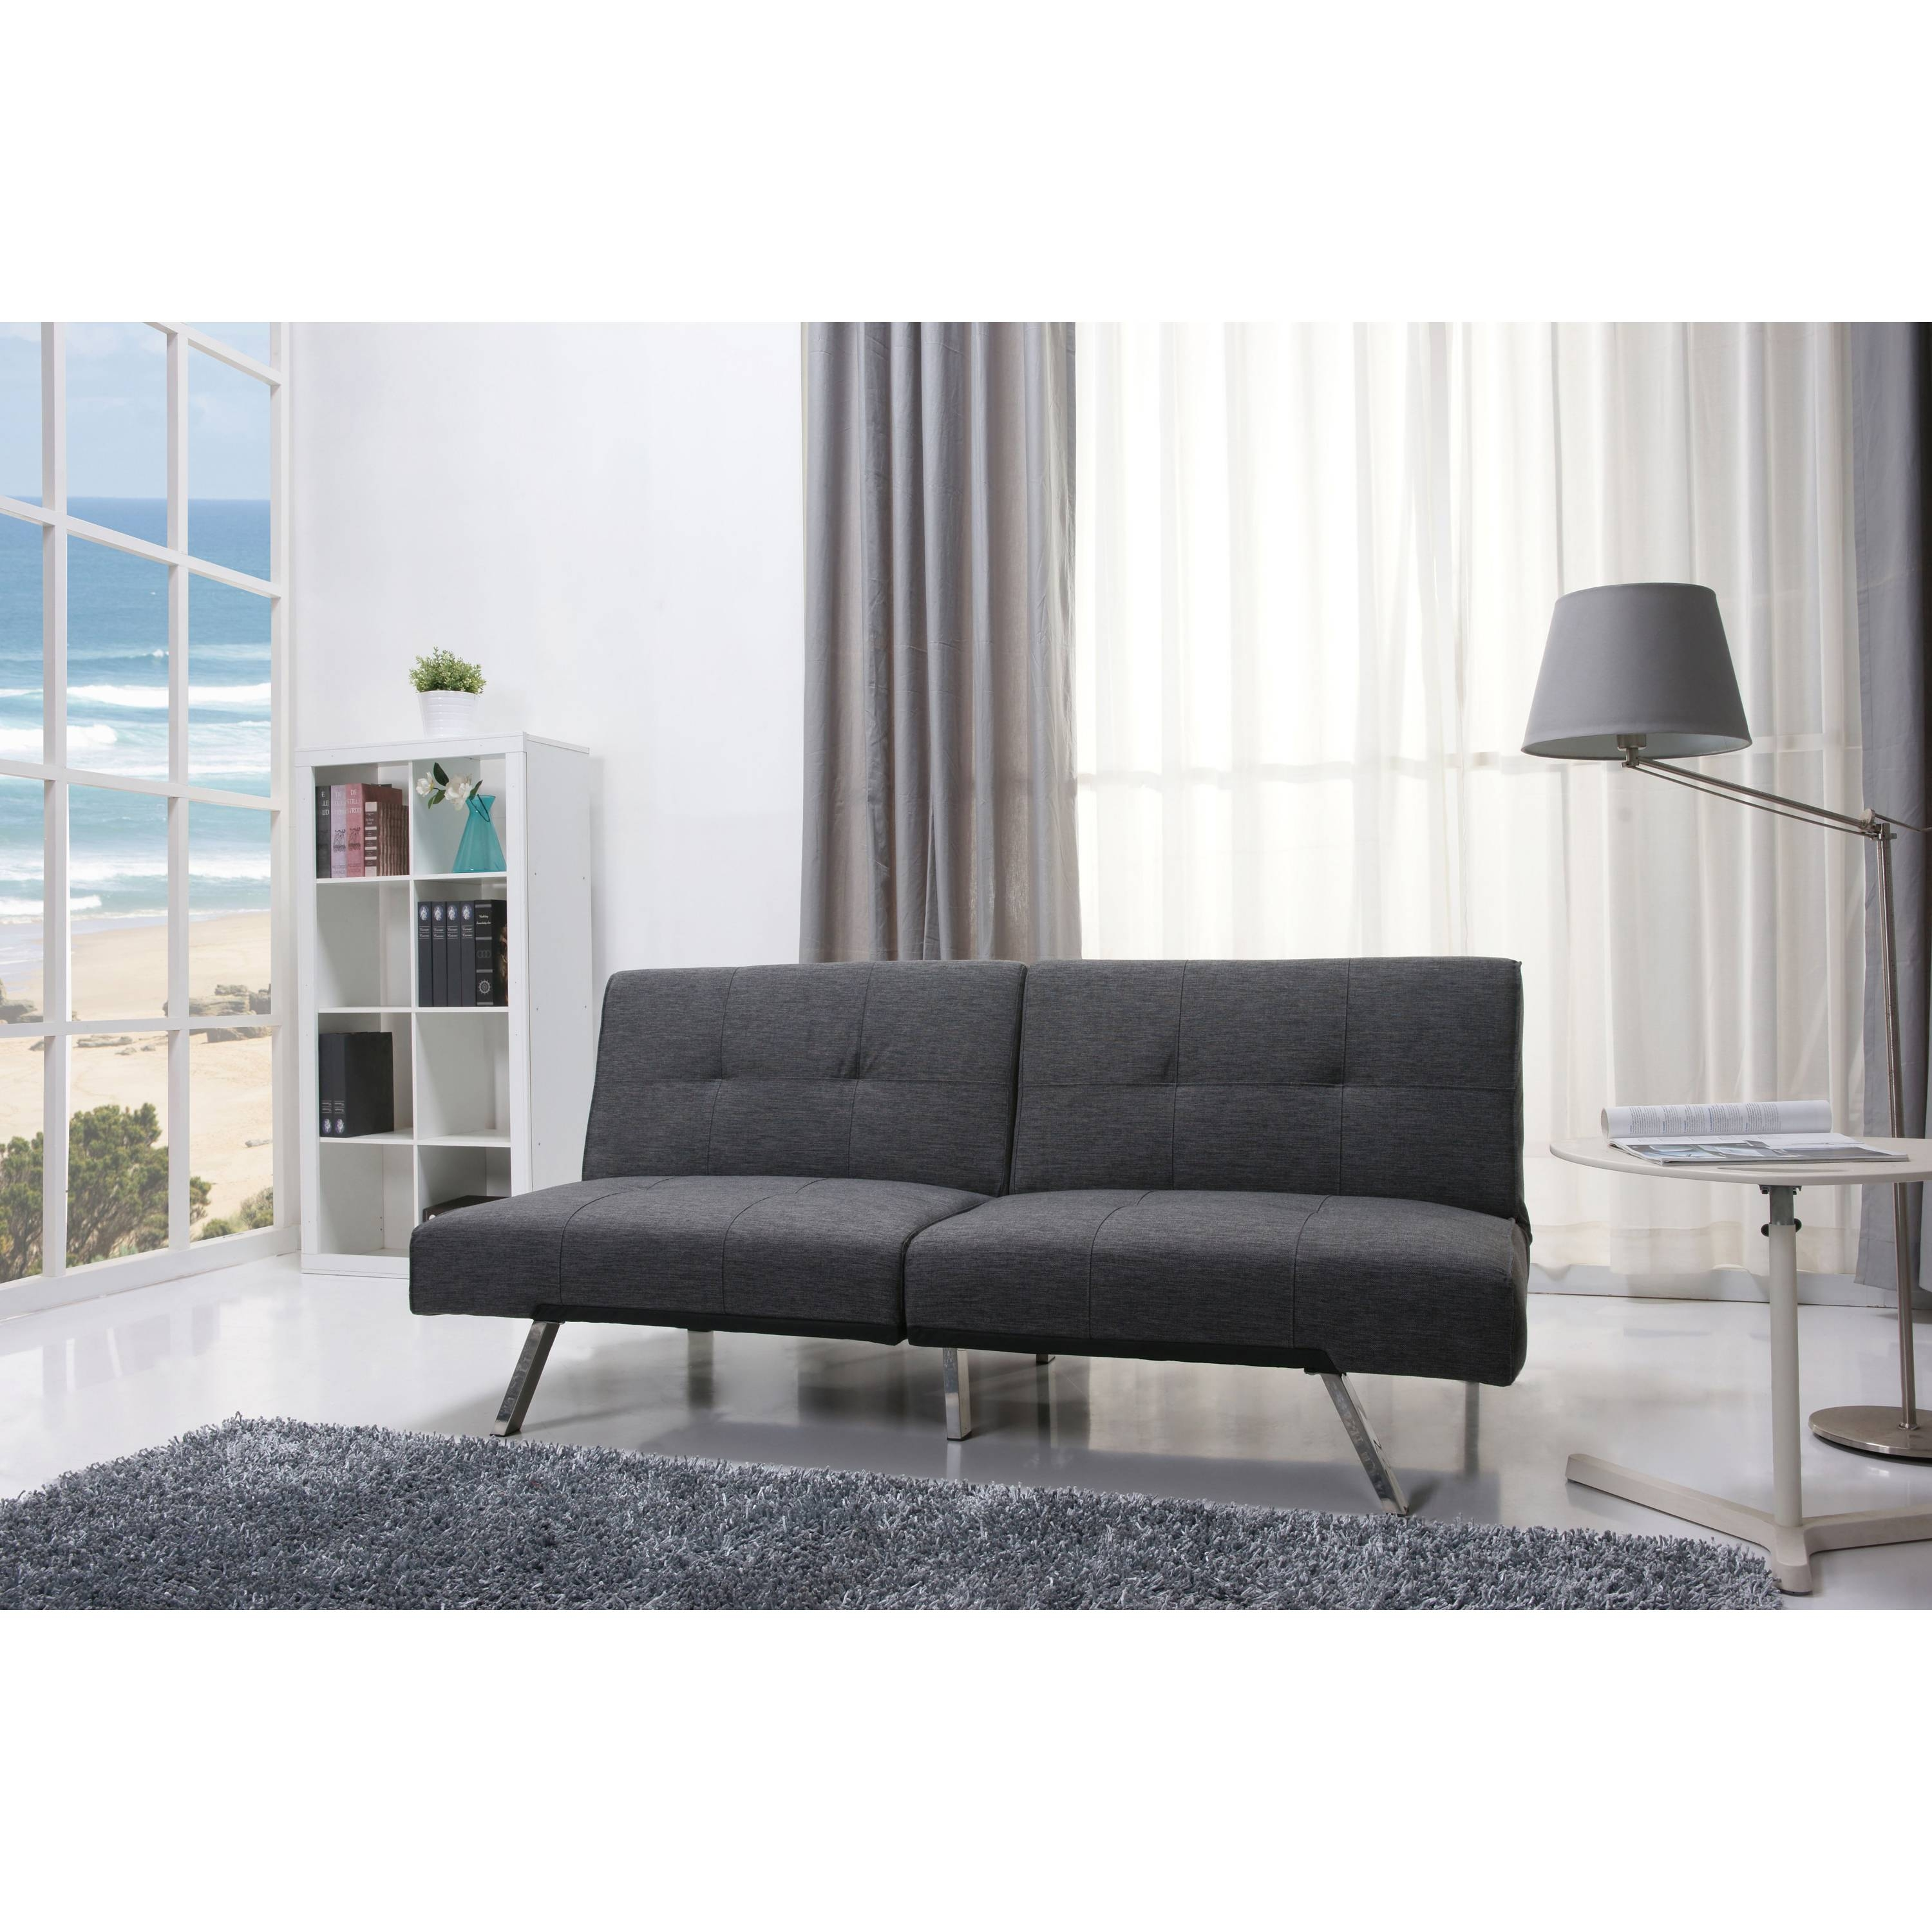 mainstays contempo futon sofa bed multiple colors color charcoal mainstays contempo futon sofa bed review   functionalities    rh   functionalities